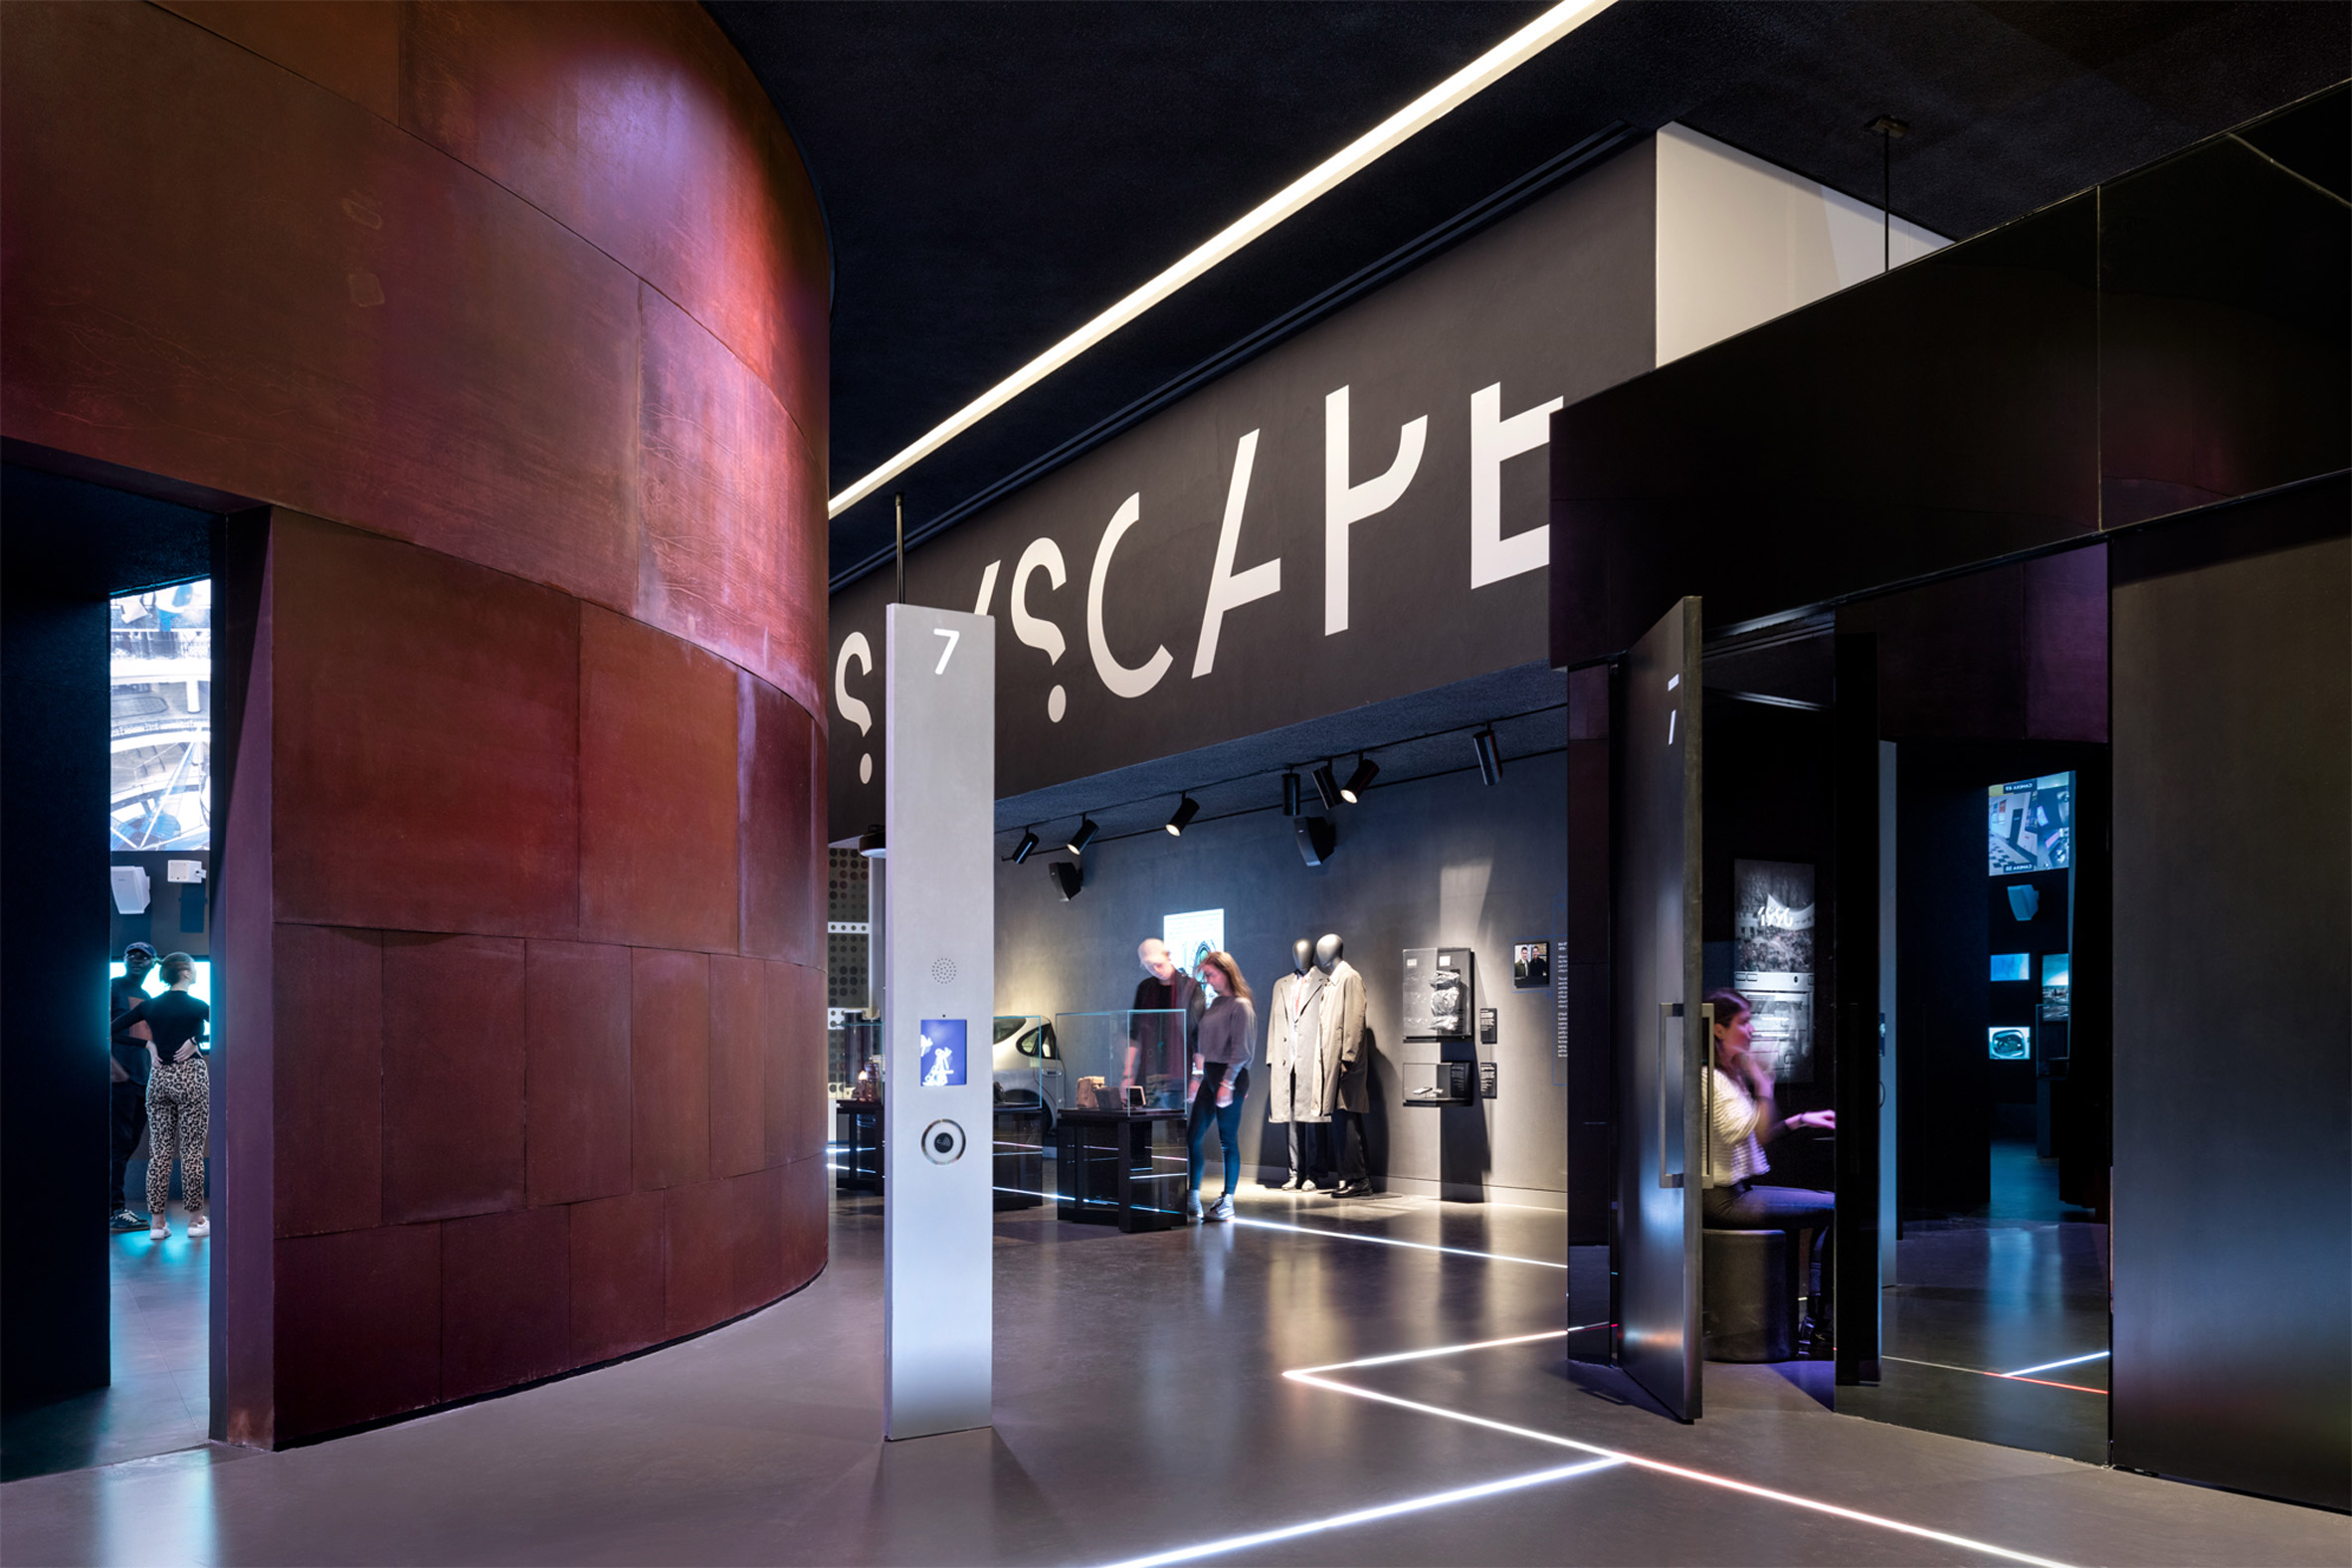 David Adjaye's Spyscape museum of espionage opens in New York